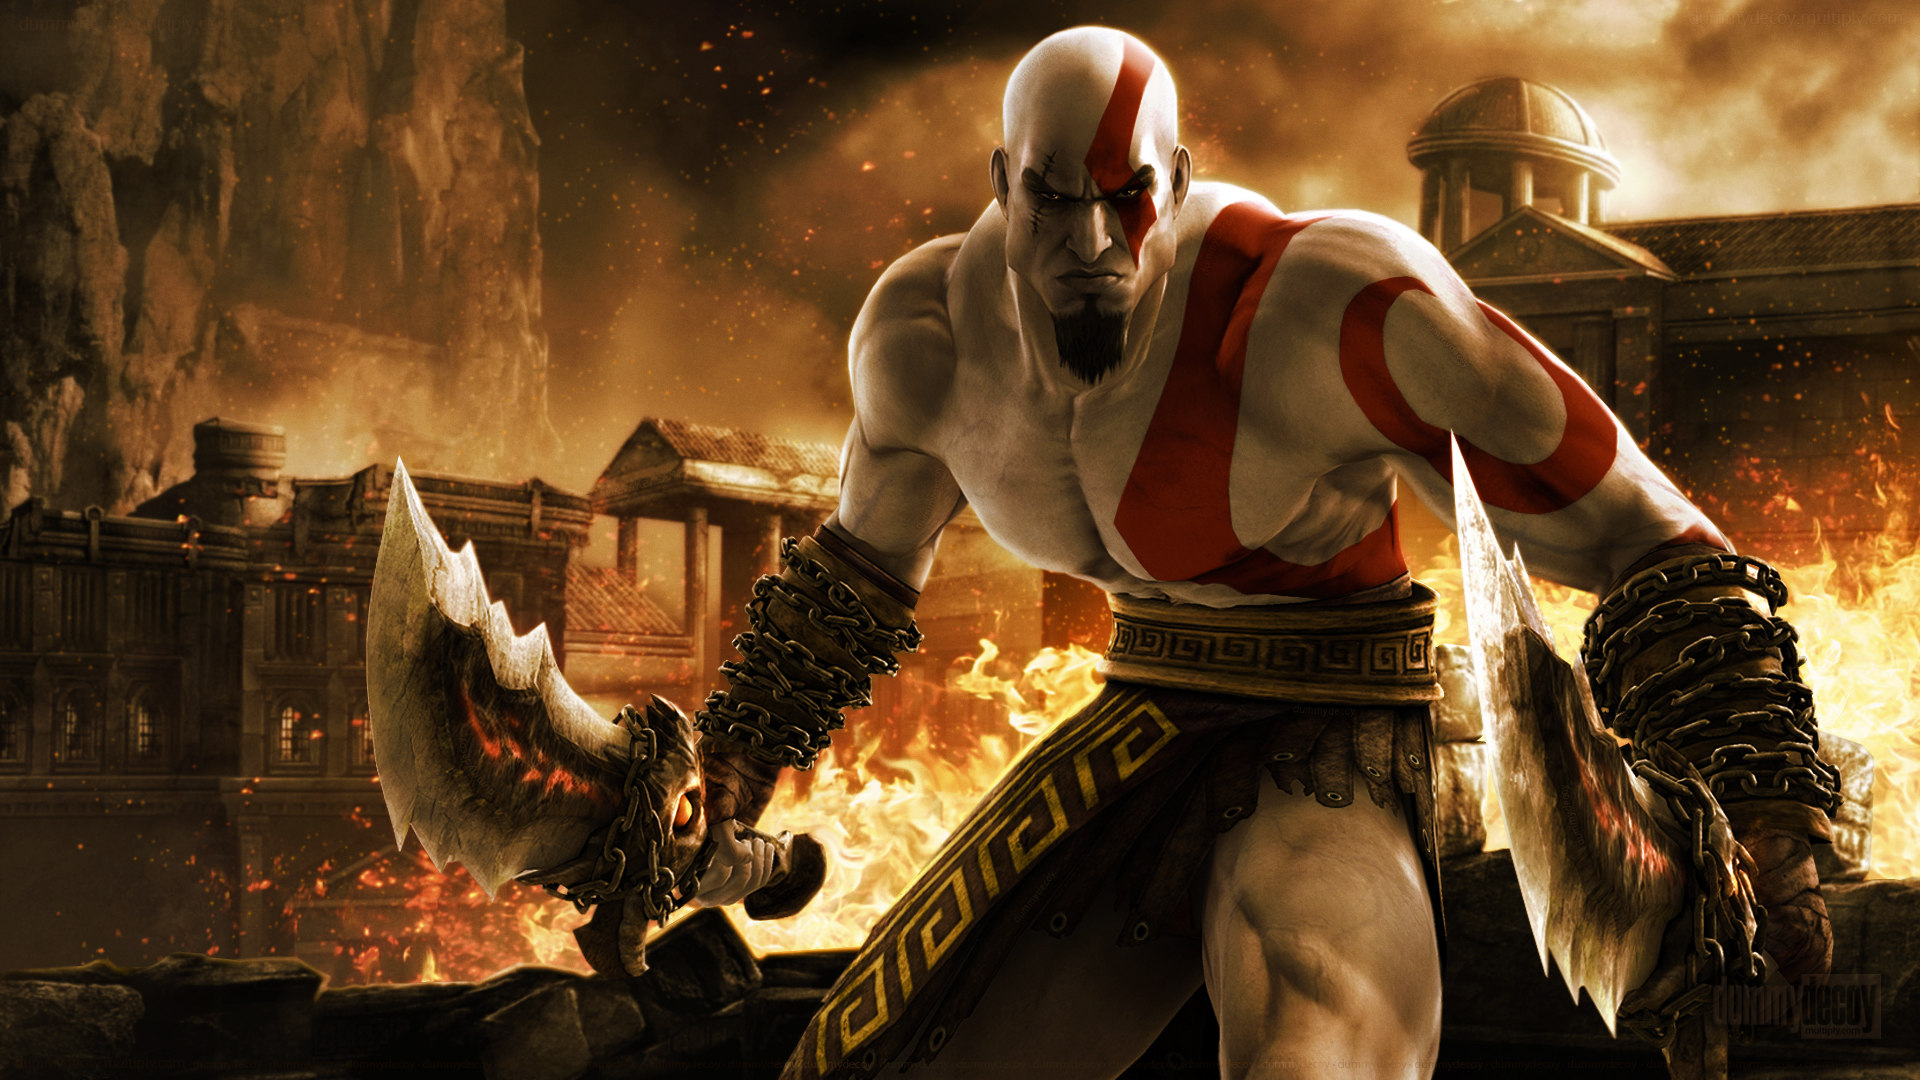 Another God of War game is in development according to Sony